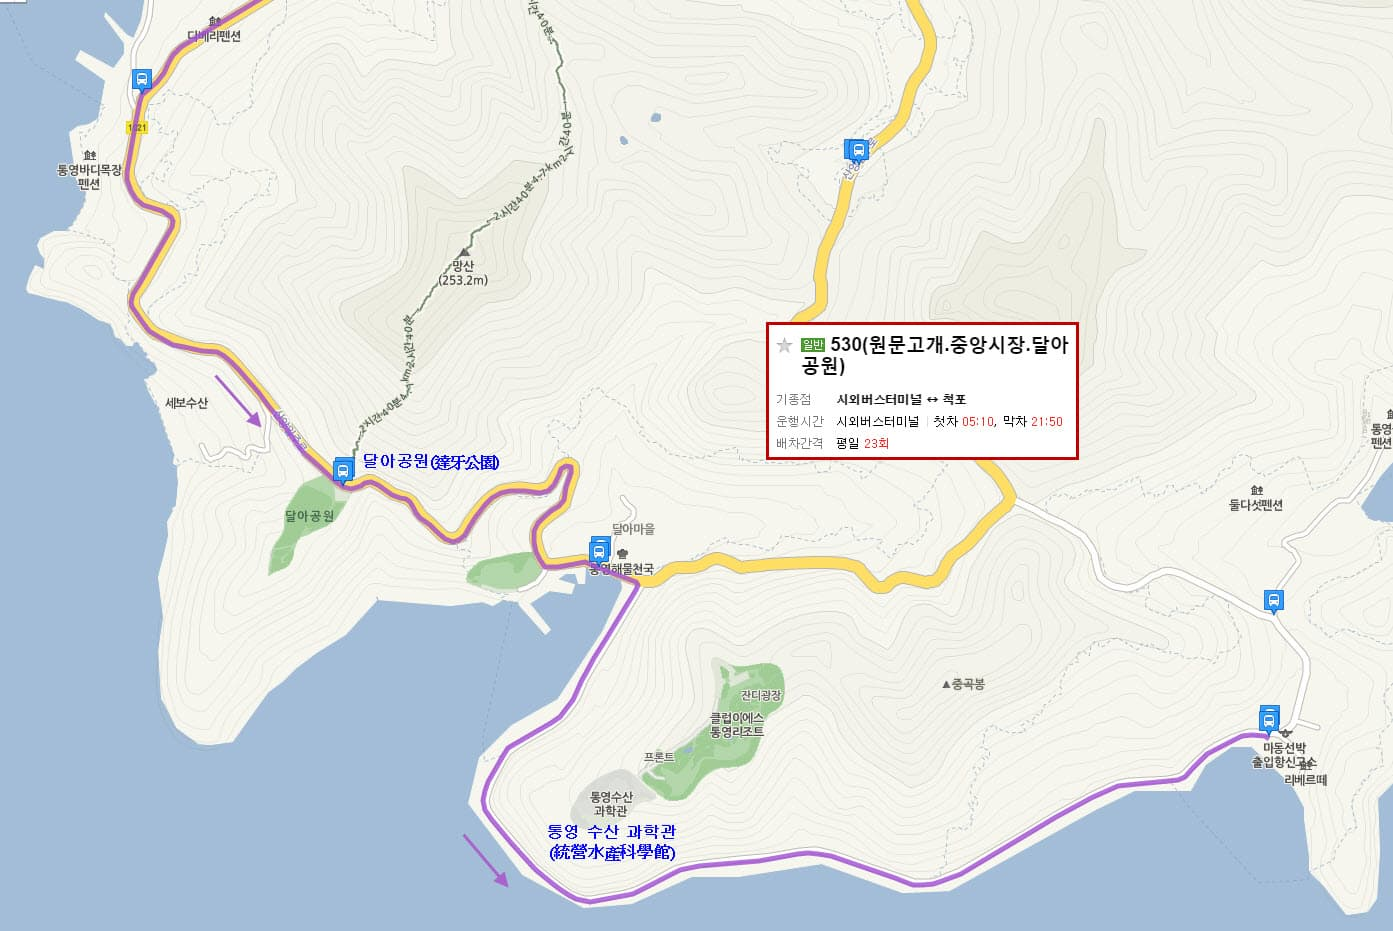 tongyeong-bus-530-route-02